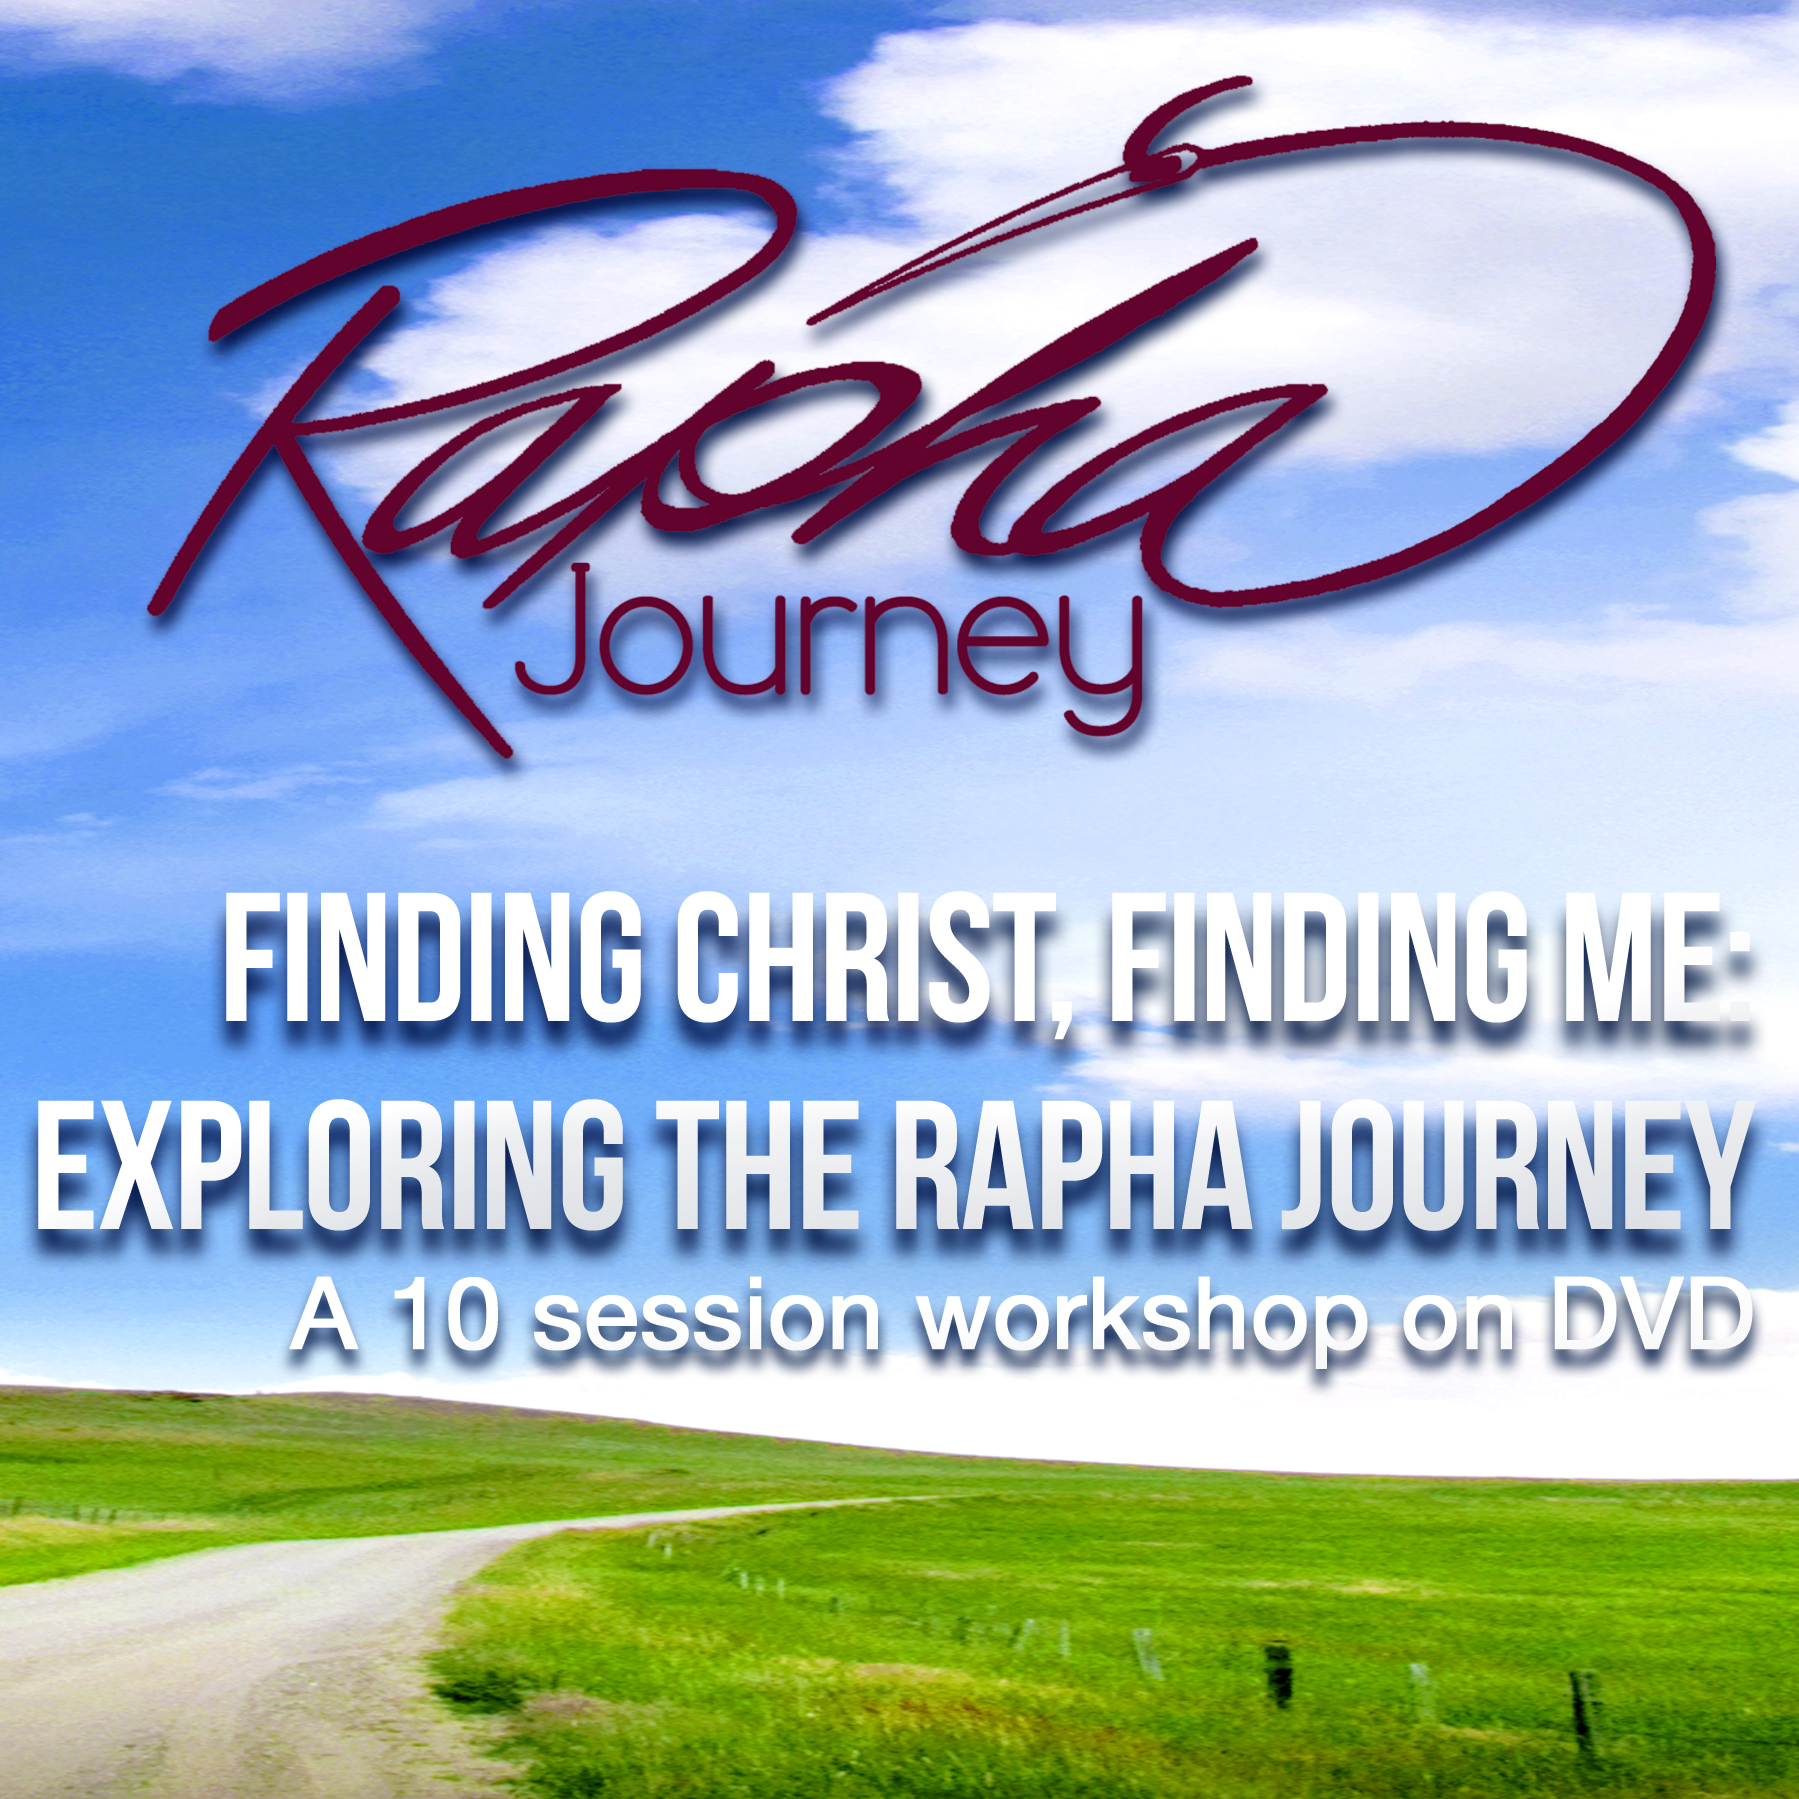 Finding Christ, Finding Me: Exploring the Rapha Journey, DVD